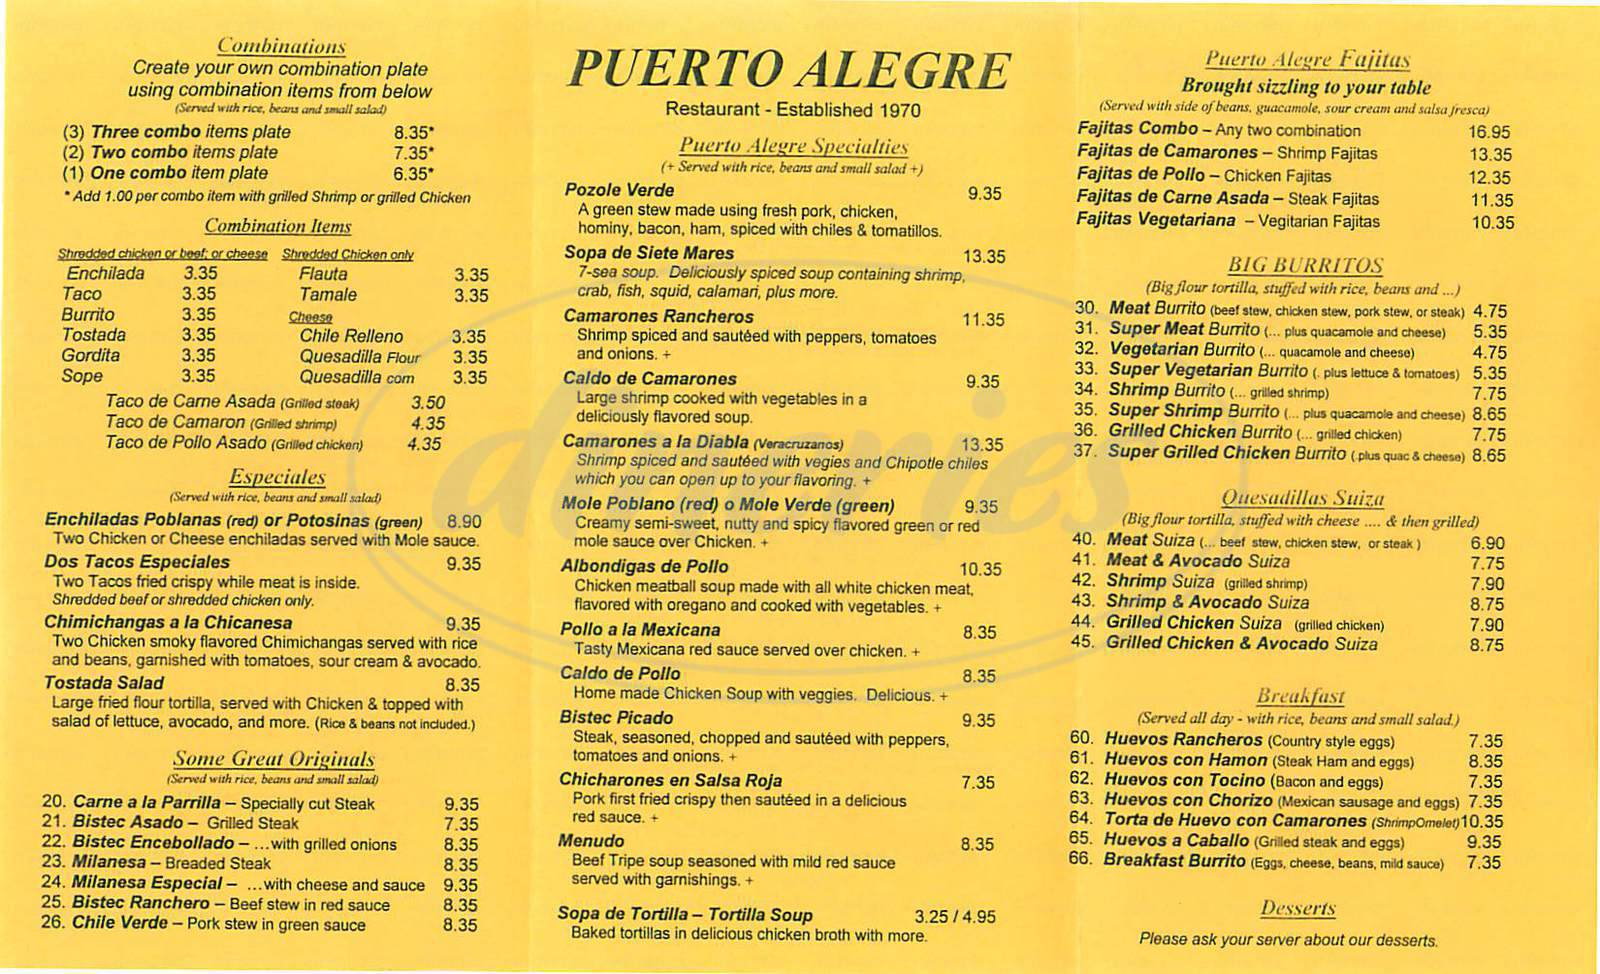 menu for Puerto Alegre